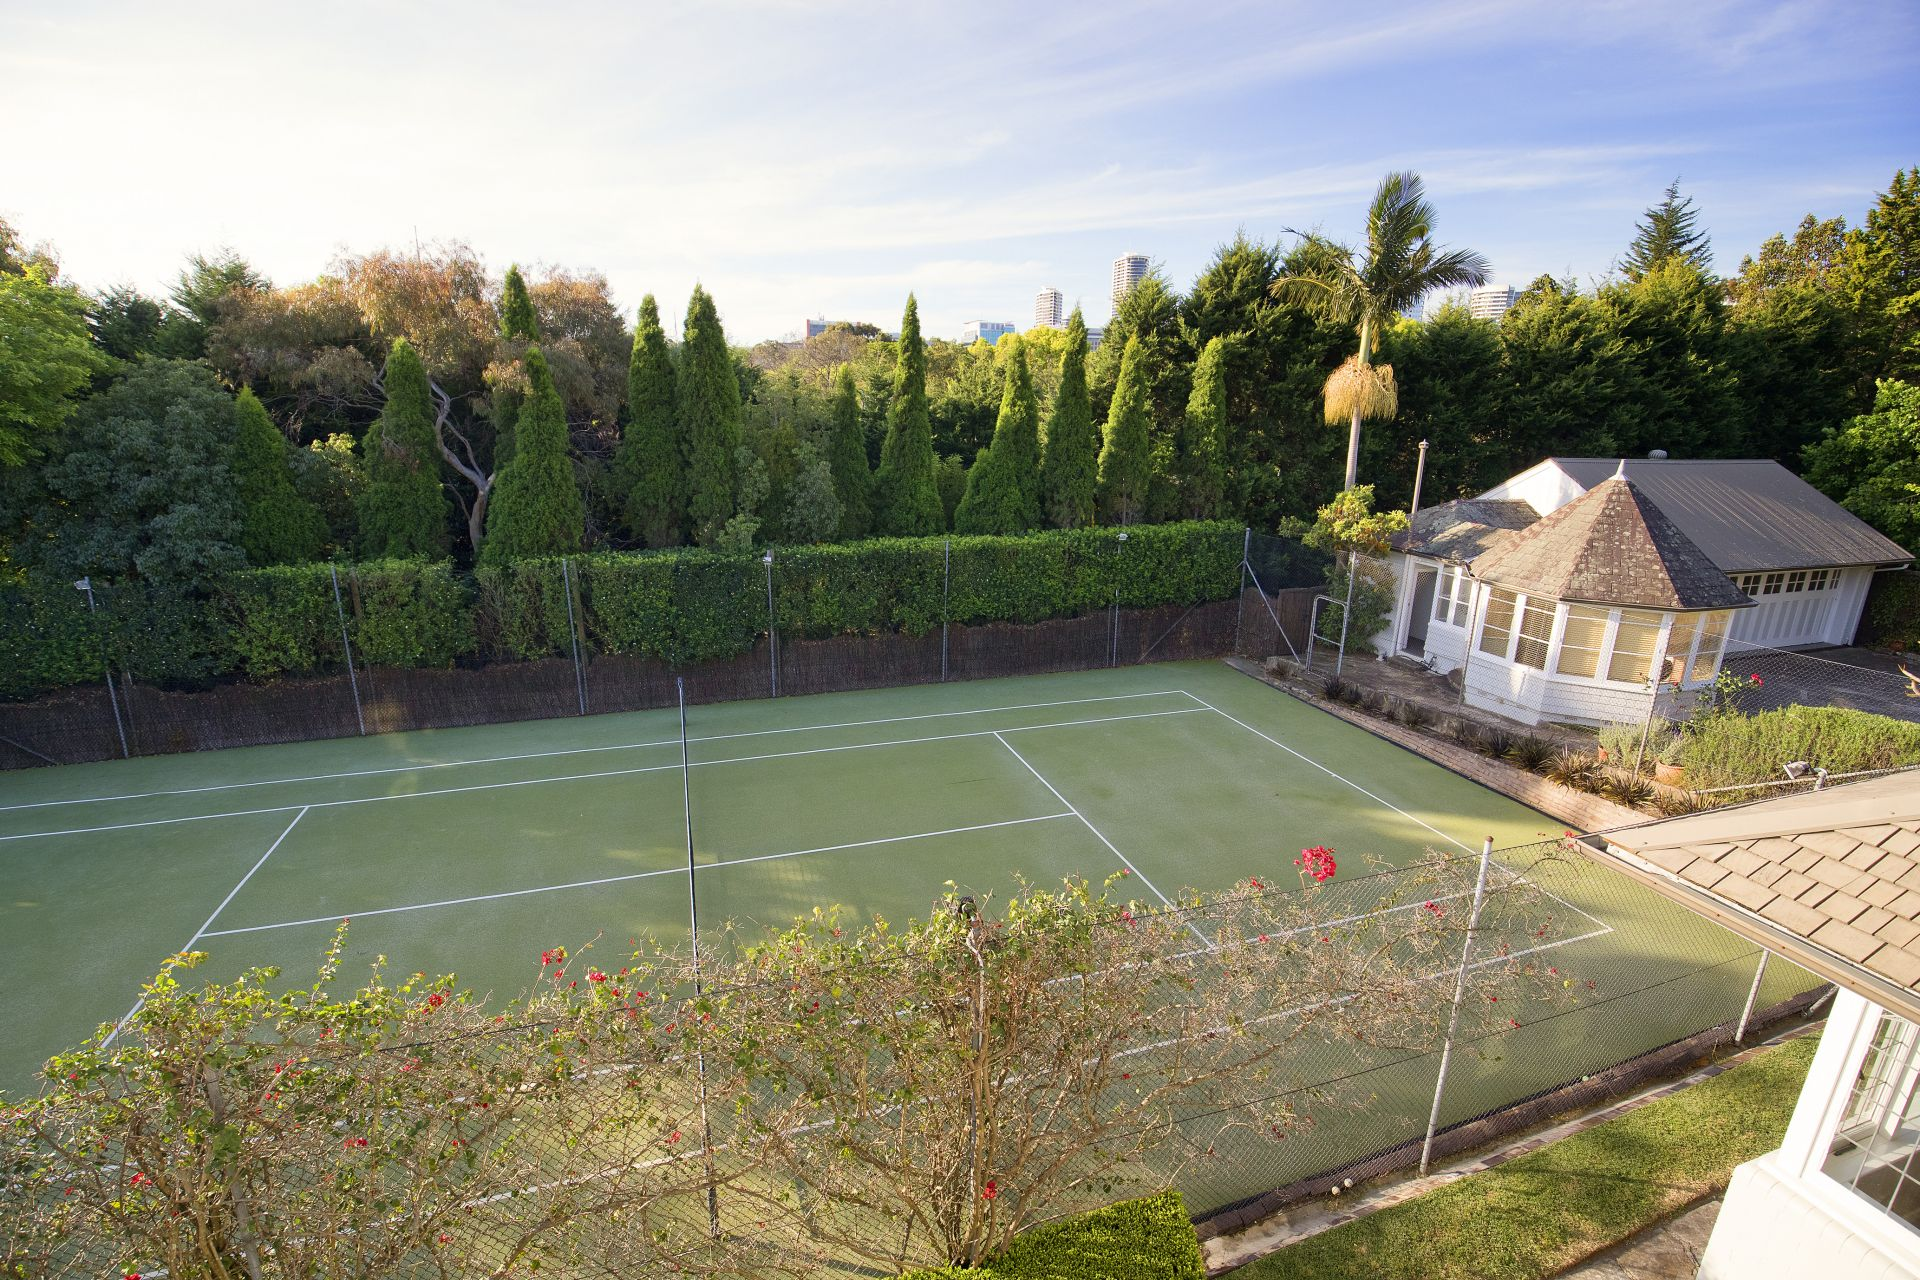 Additional photo for property listing at 'Niddrie' Significant 1905 federation landmark with tennis court 22 Milner Crescent Wollstonecraft, New South Wales,2065 澳大利亞